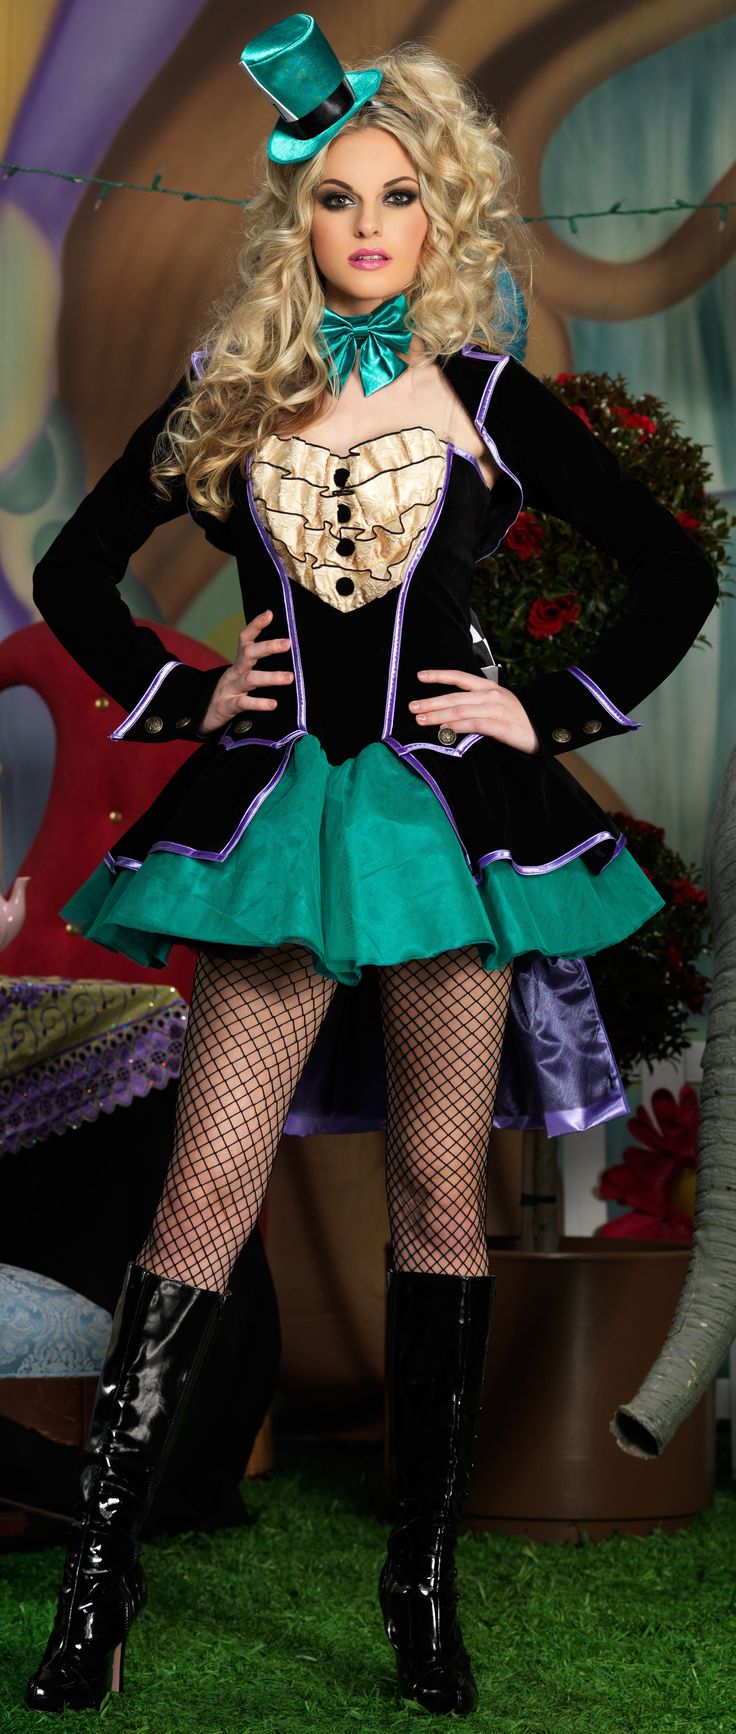 Mischievous Mad Hatter costume!                                                                                                                                                                                 More